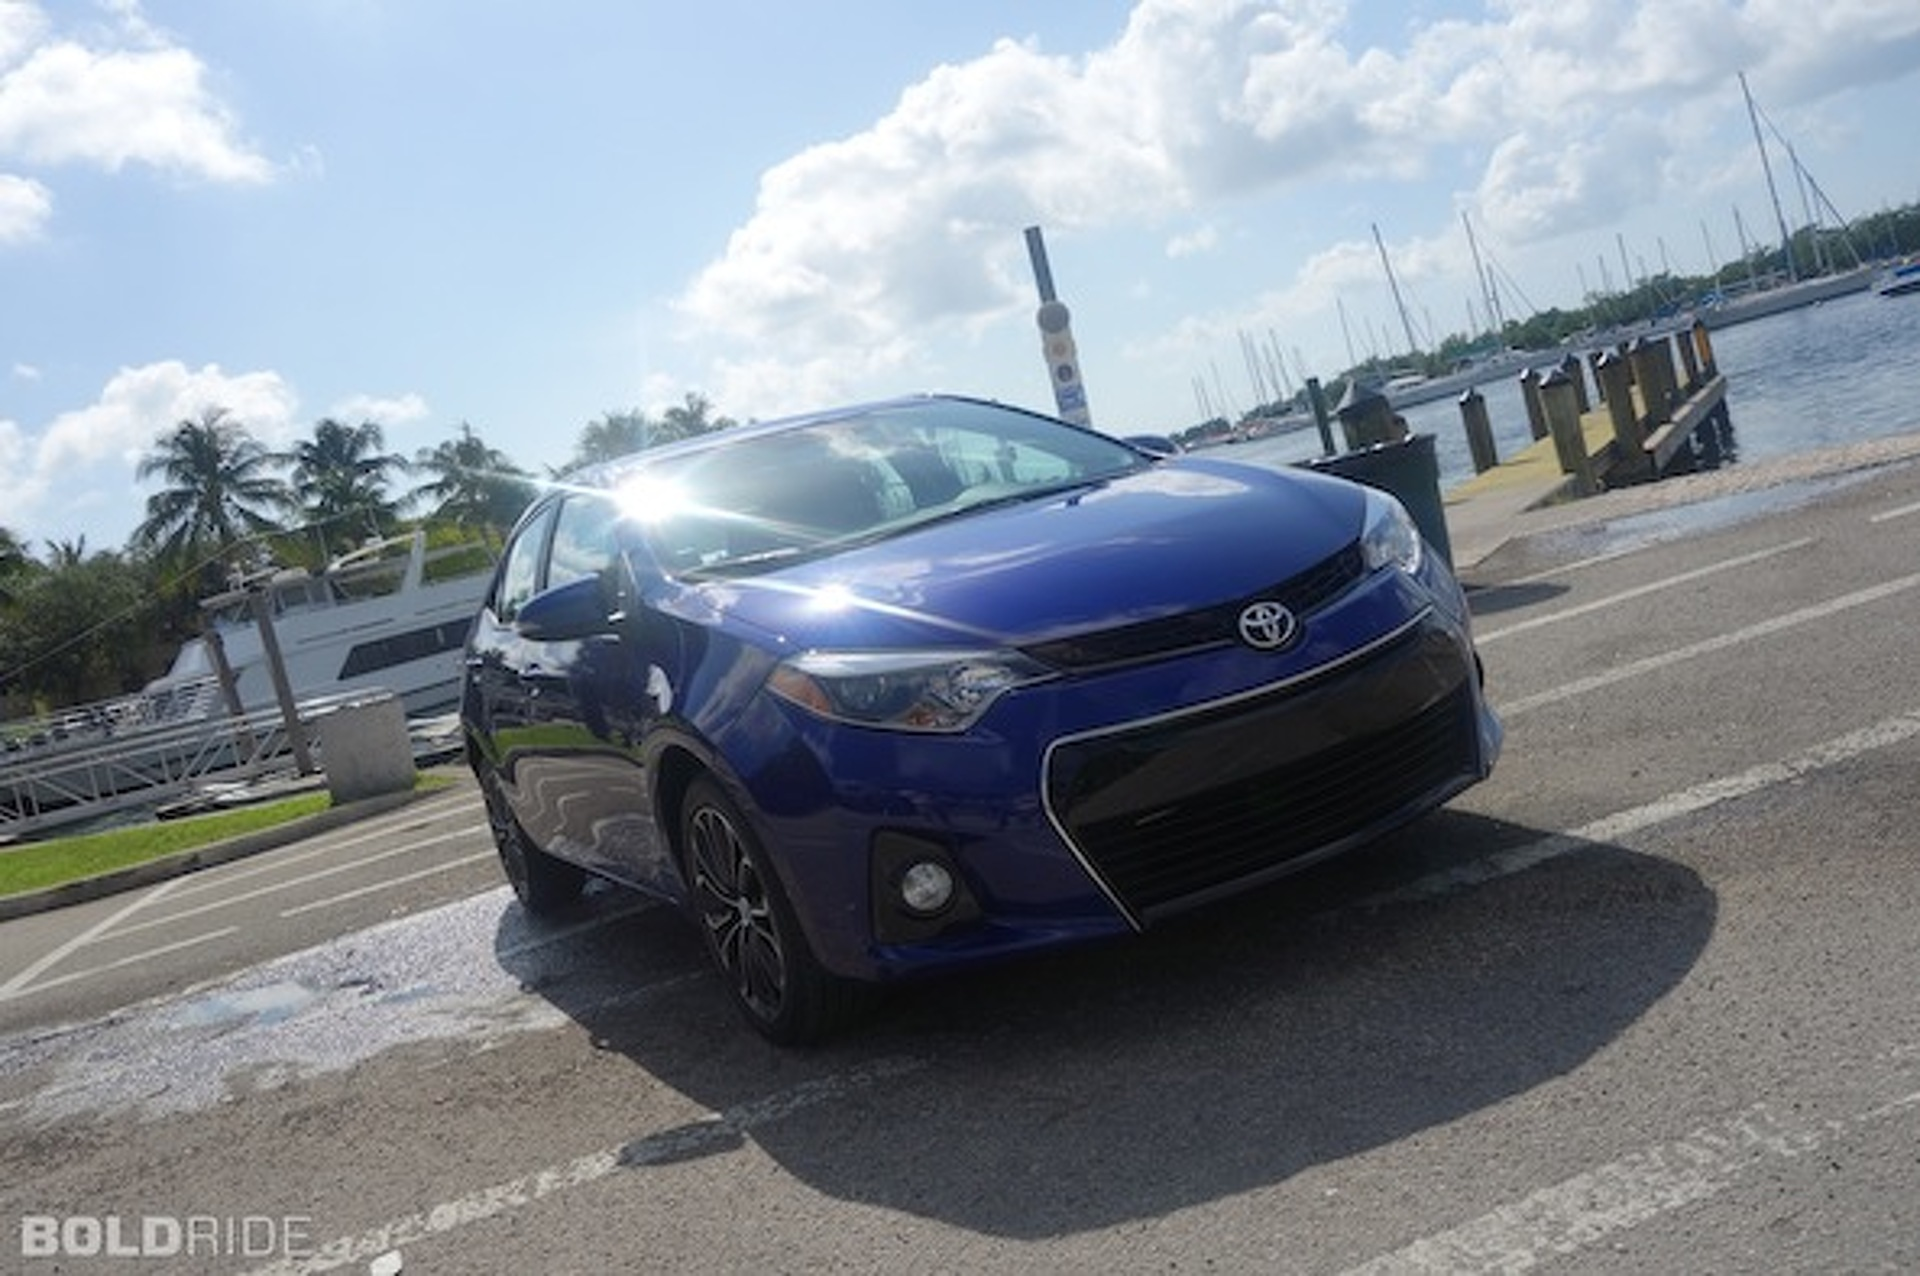 2014 Toyota Corolla First Drive: Average Gets an Upgrade